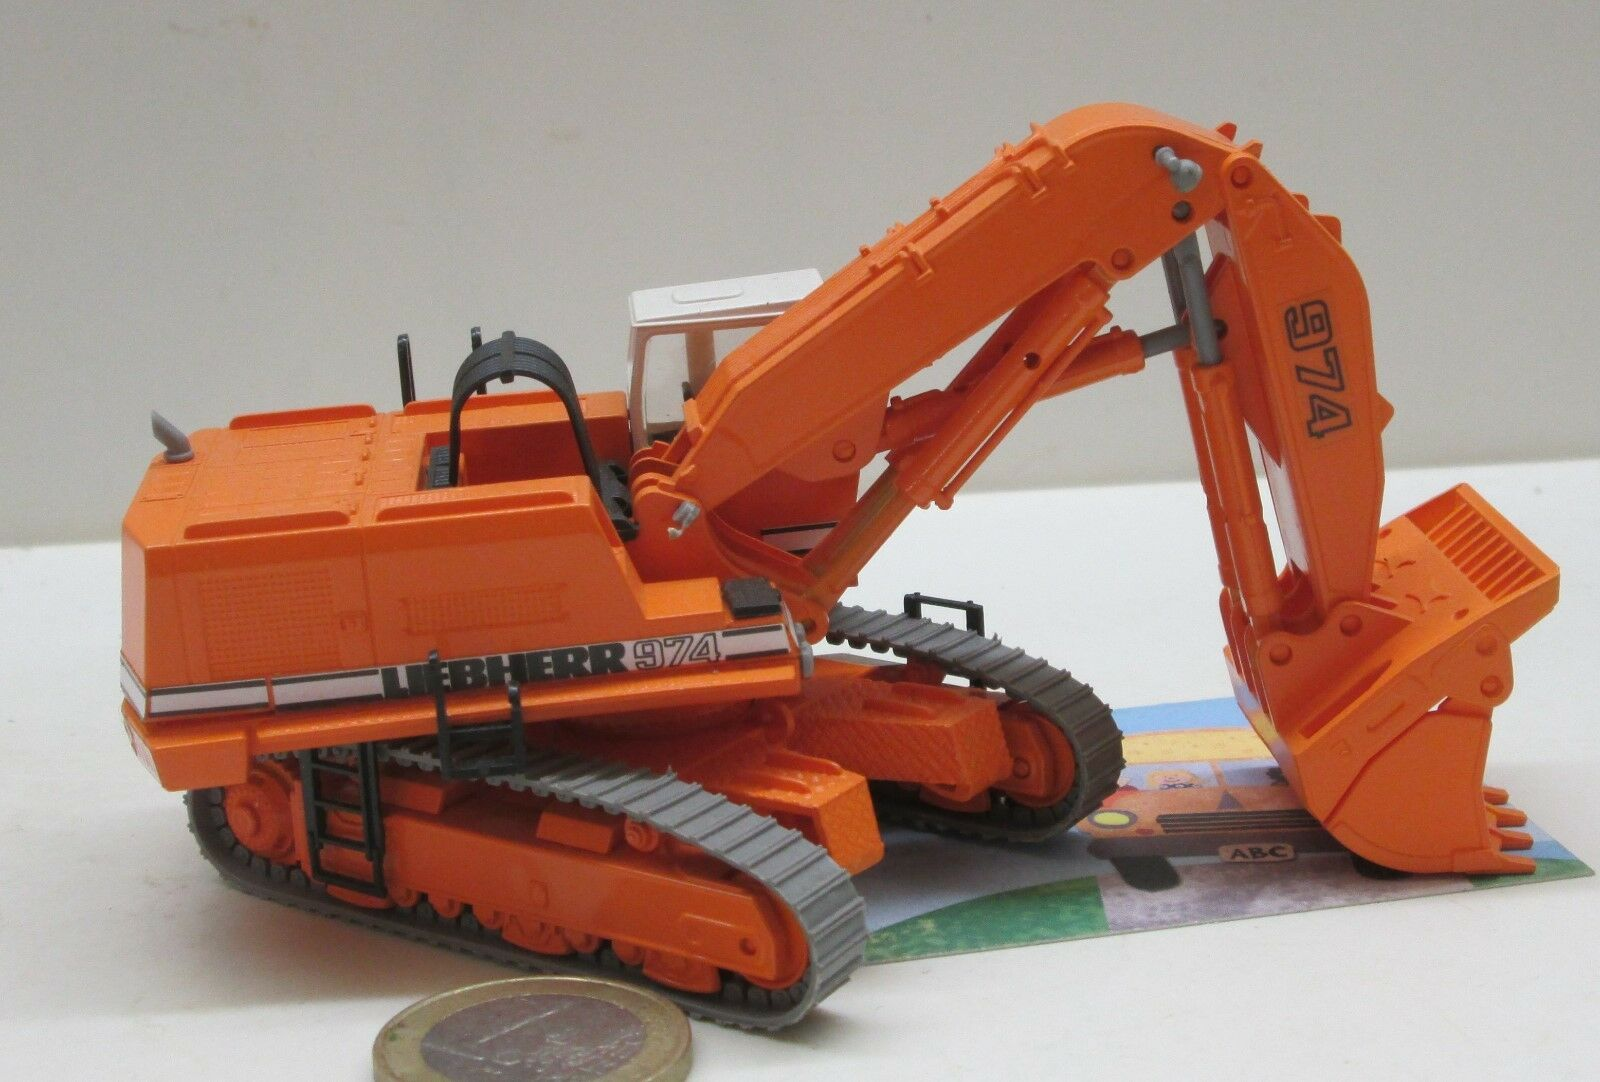 Bau017  LIEBHERR 974 chenilles Excavatrice hochlöffel, Orange  neutre (287)  économiser 35% - 70% de réduction